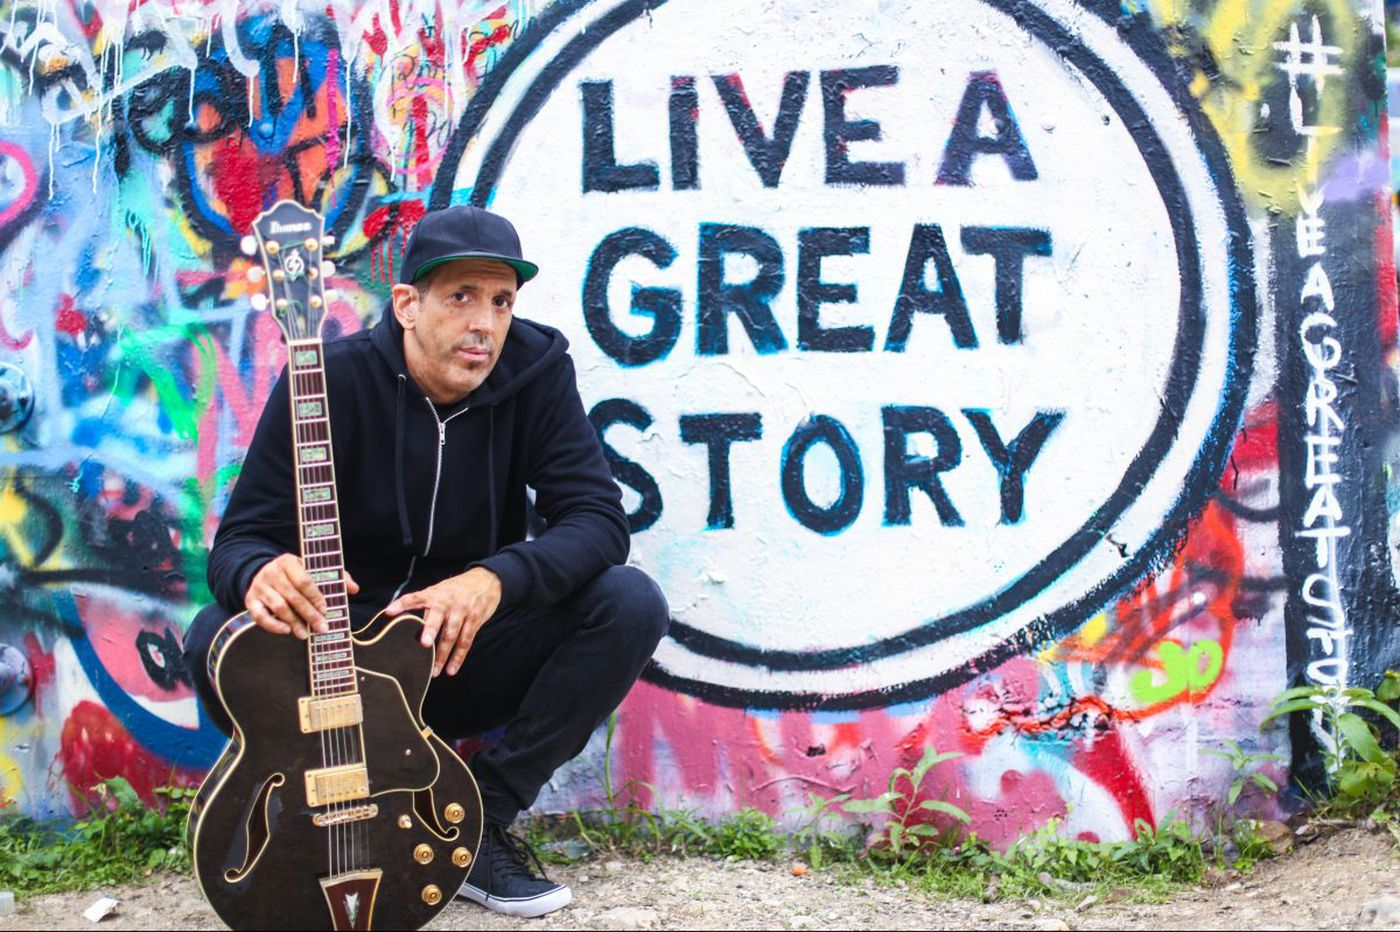 Center City Jazz Fest welcomes back guitar great Dave Manley